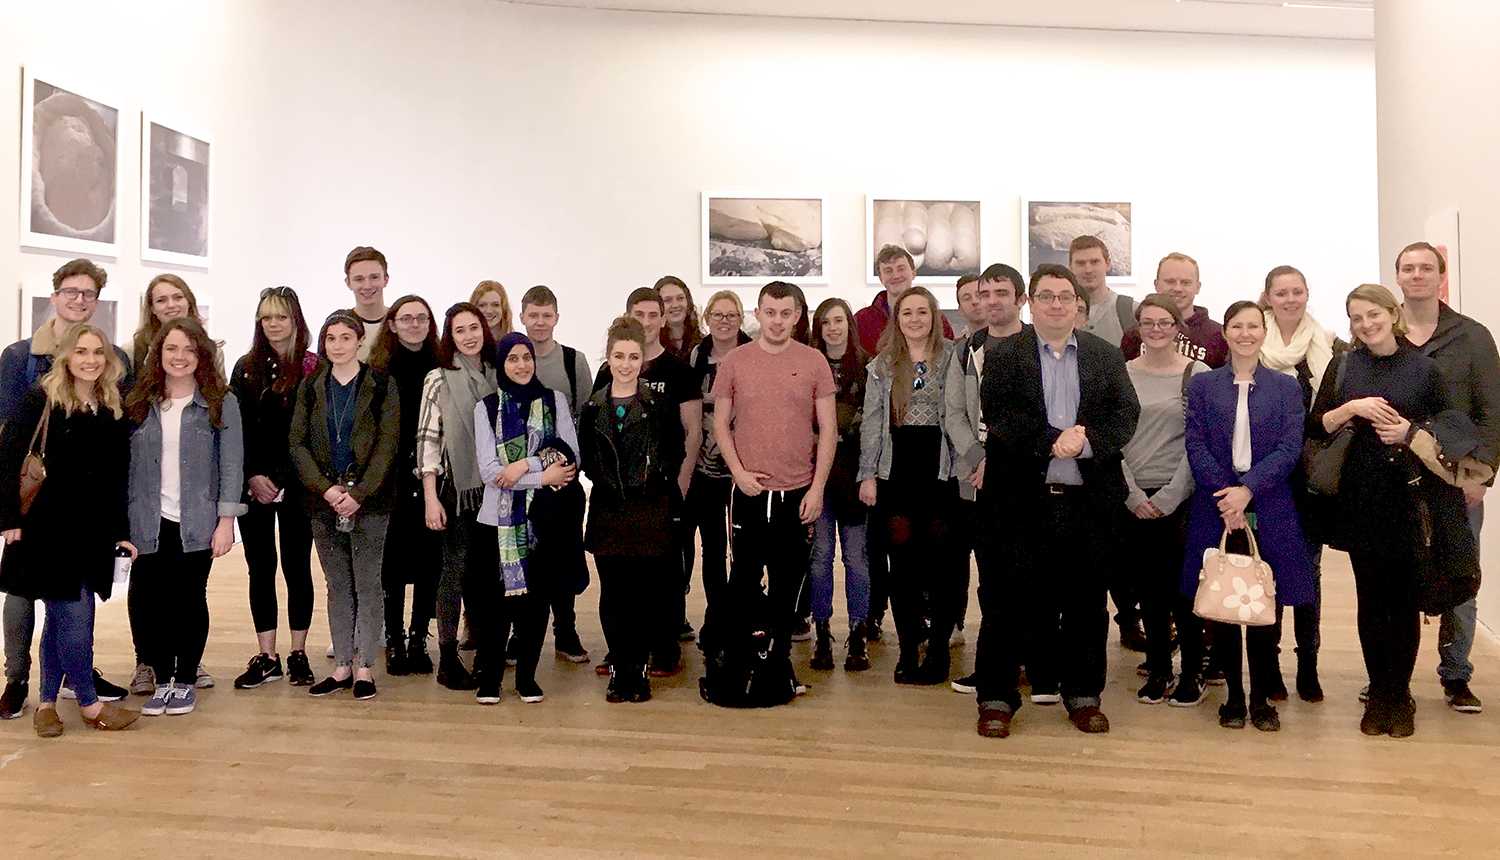 Third & fourth year Neuroscience students explore 'Gut Instinct' at Glucksman